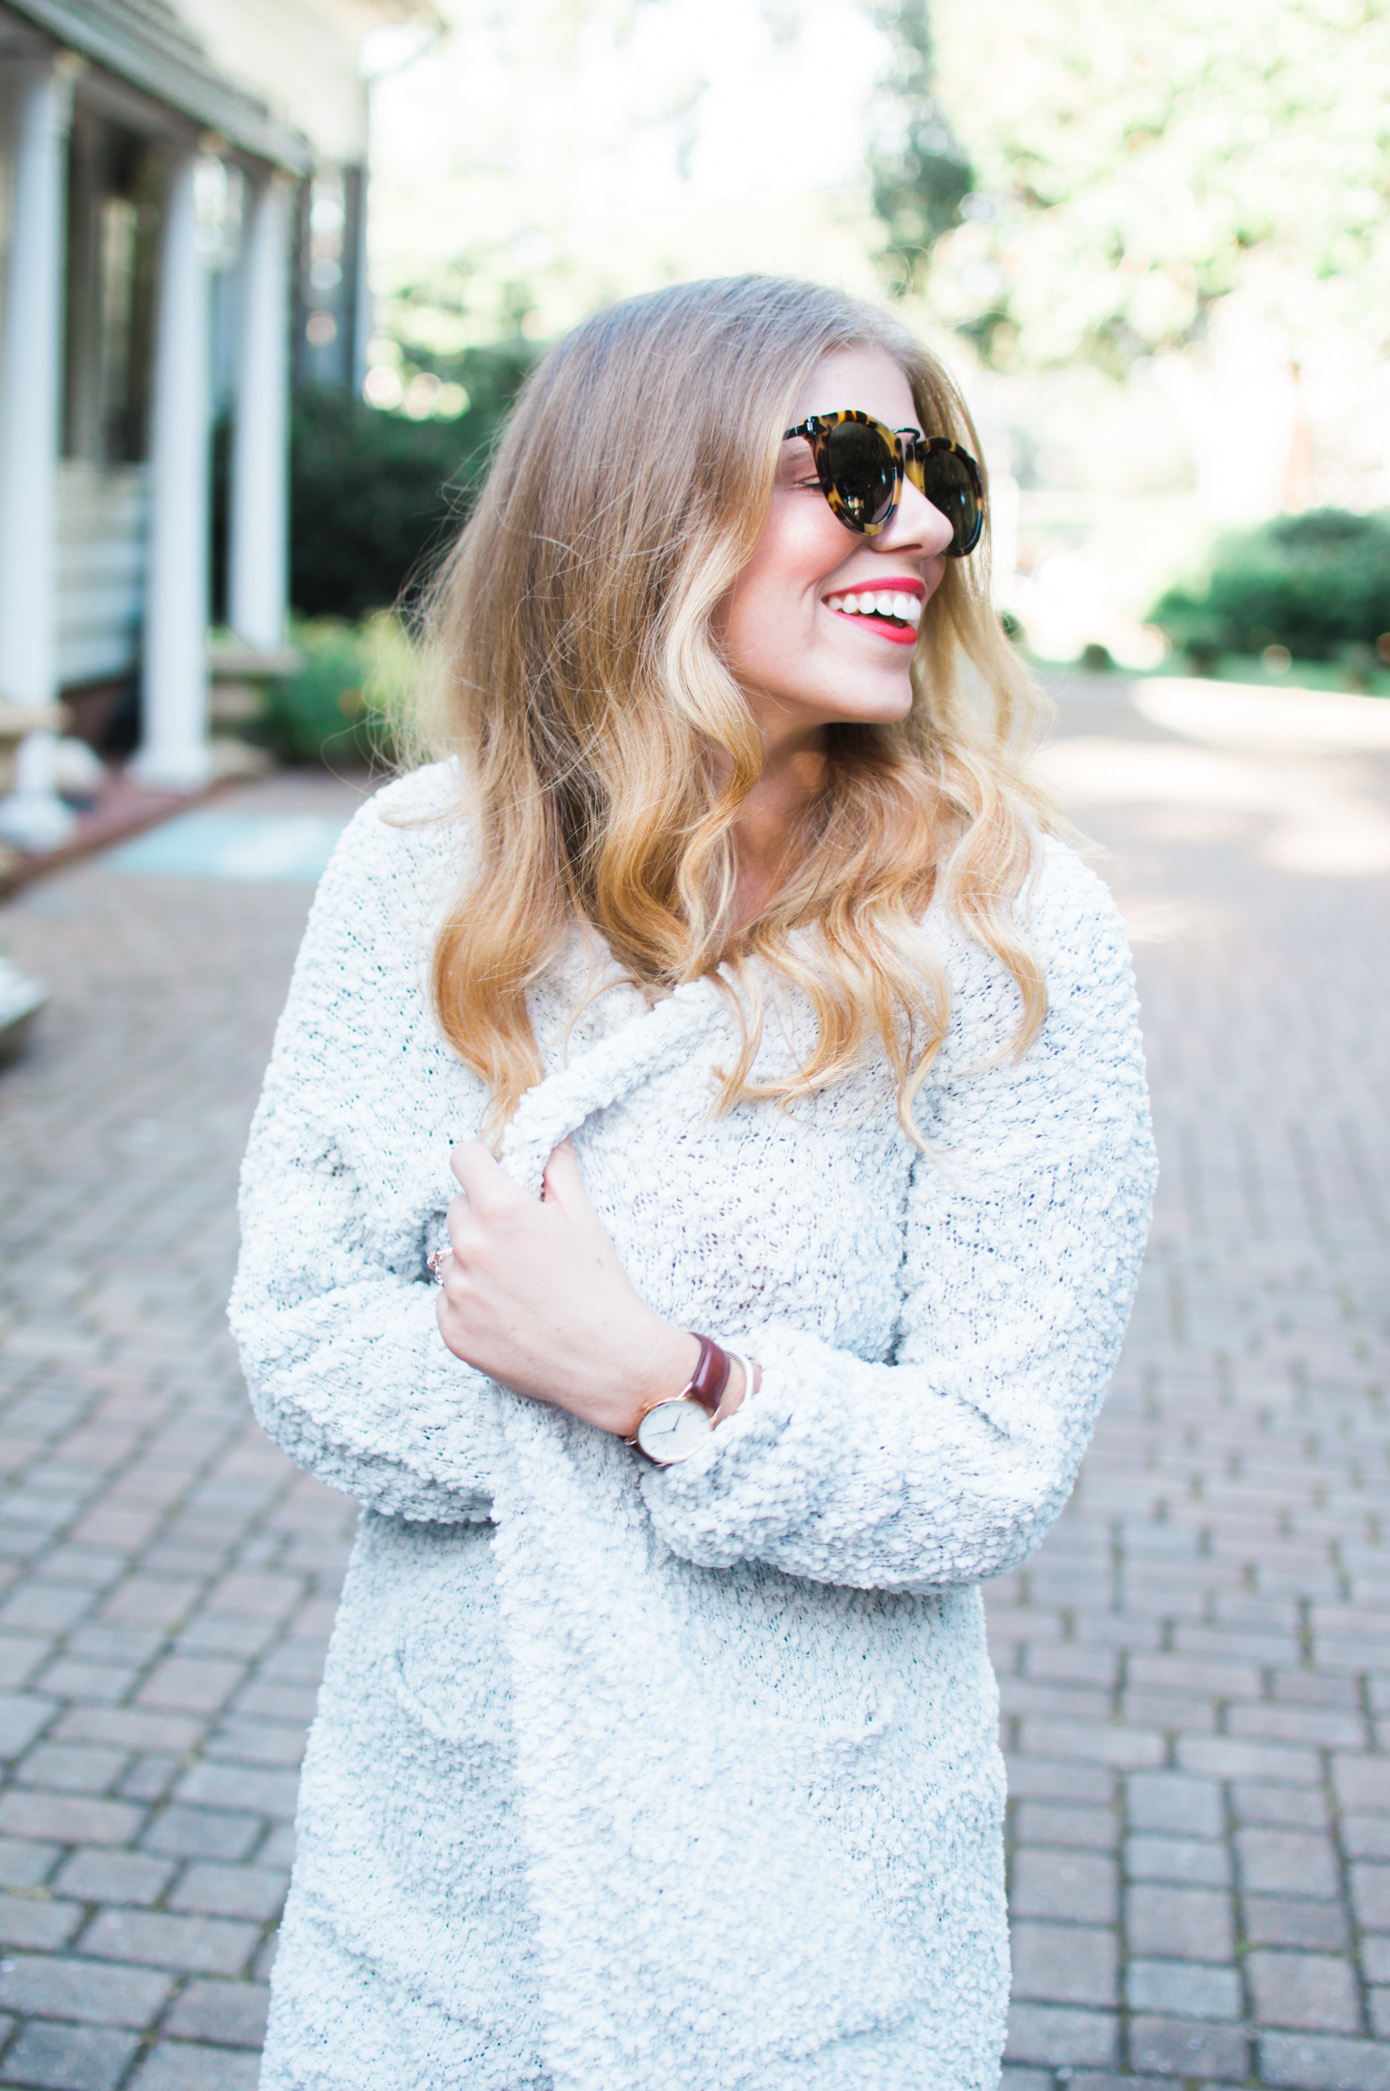 Olive Green for Fall | Cozy Oversized Cardigan | Louella Reese Life & Style Blog